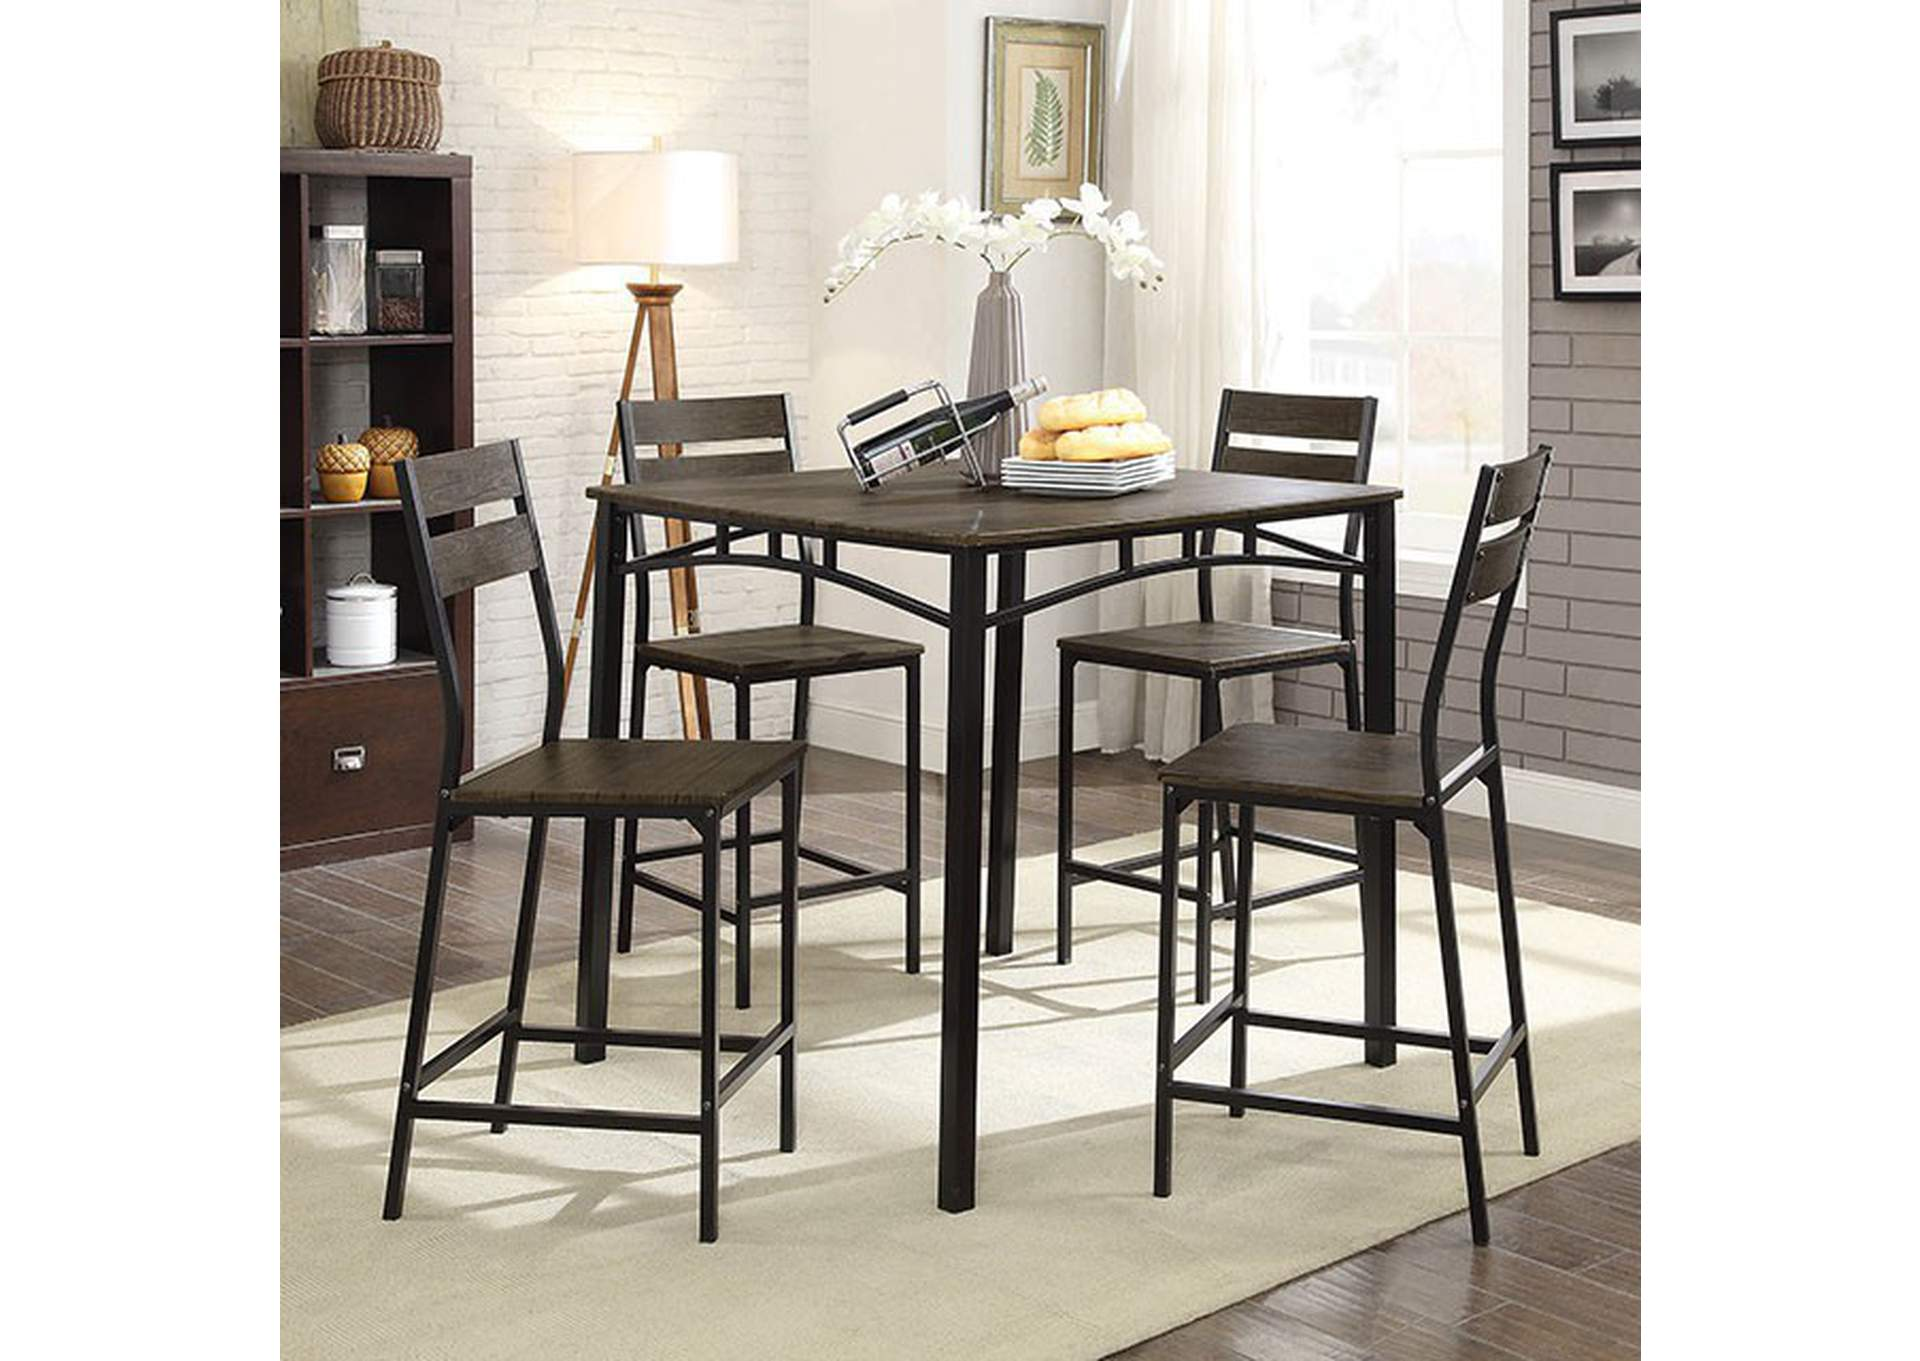 Westport Antique Brown 5 Piece Counter Height Table Set,Furniture of America